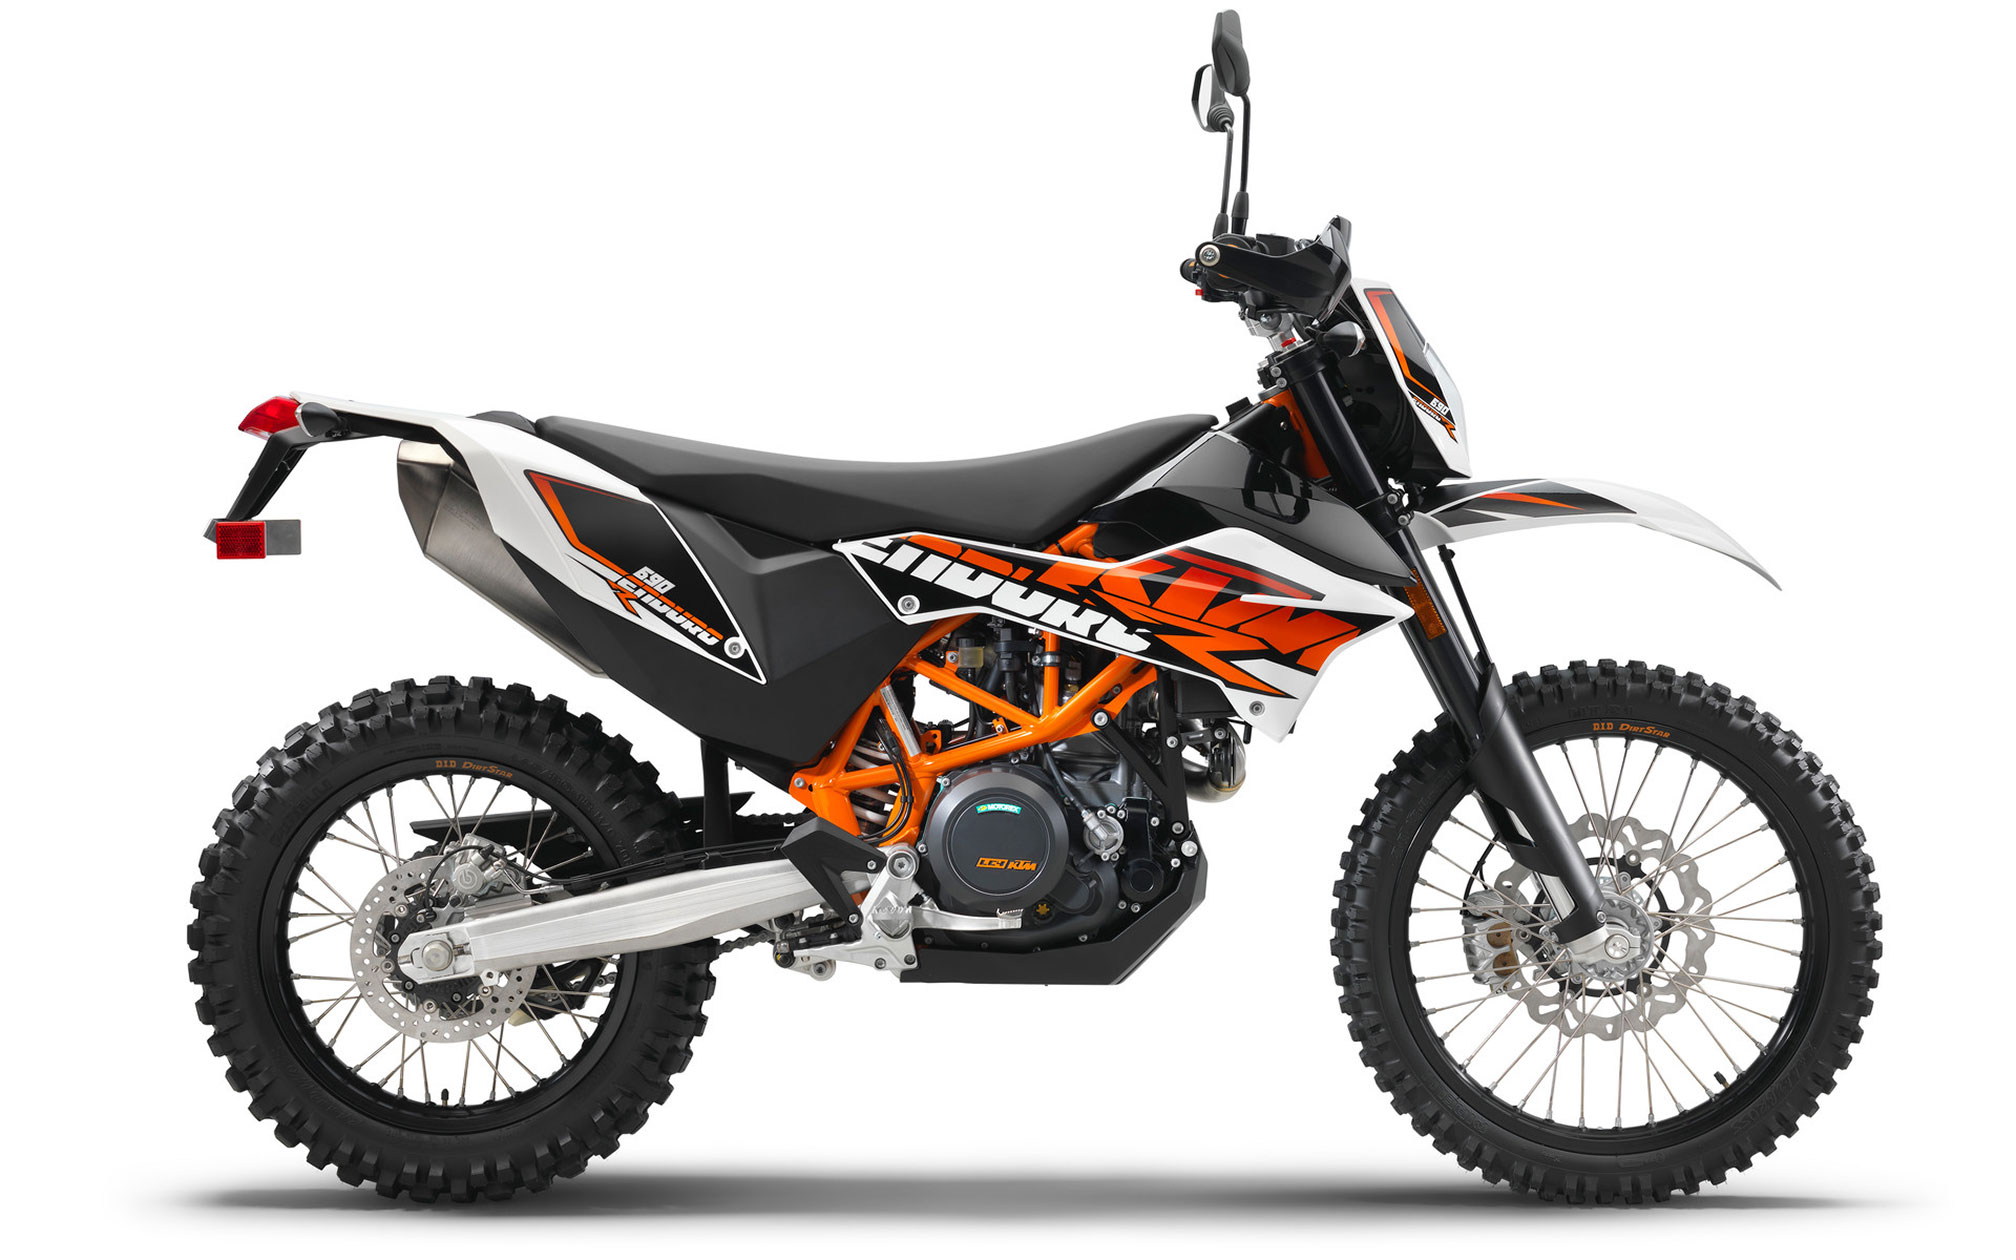 2016 ktm 690 enduro r review. Black Bedroom Furniture Sets. Home Design Ideas